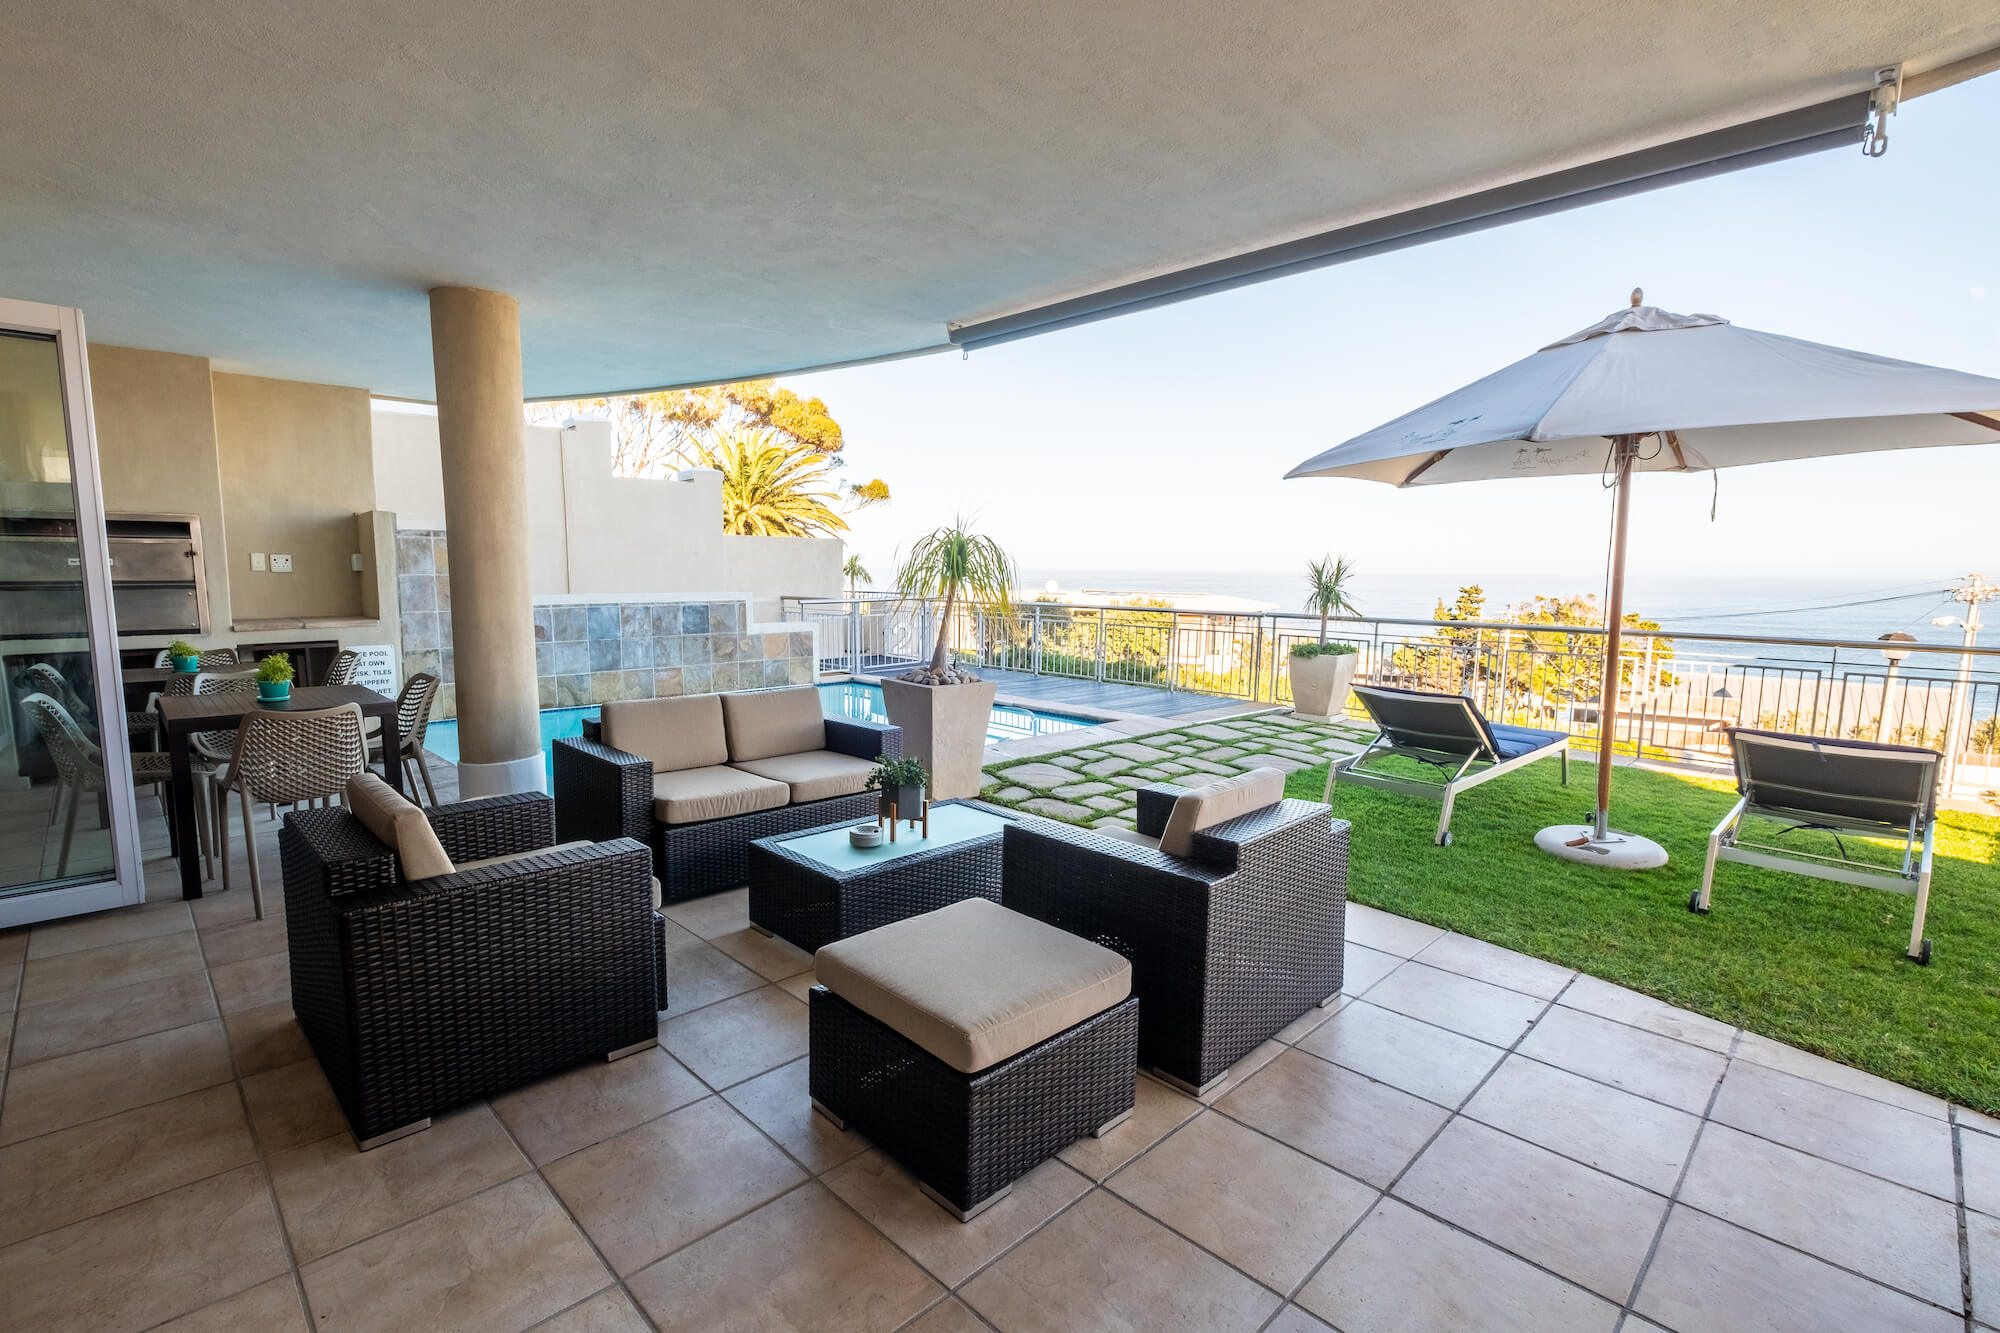 3 On Camps Bay - Common Pool area